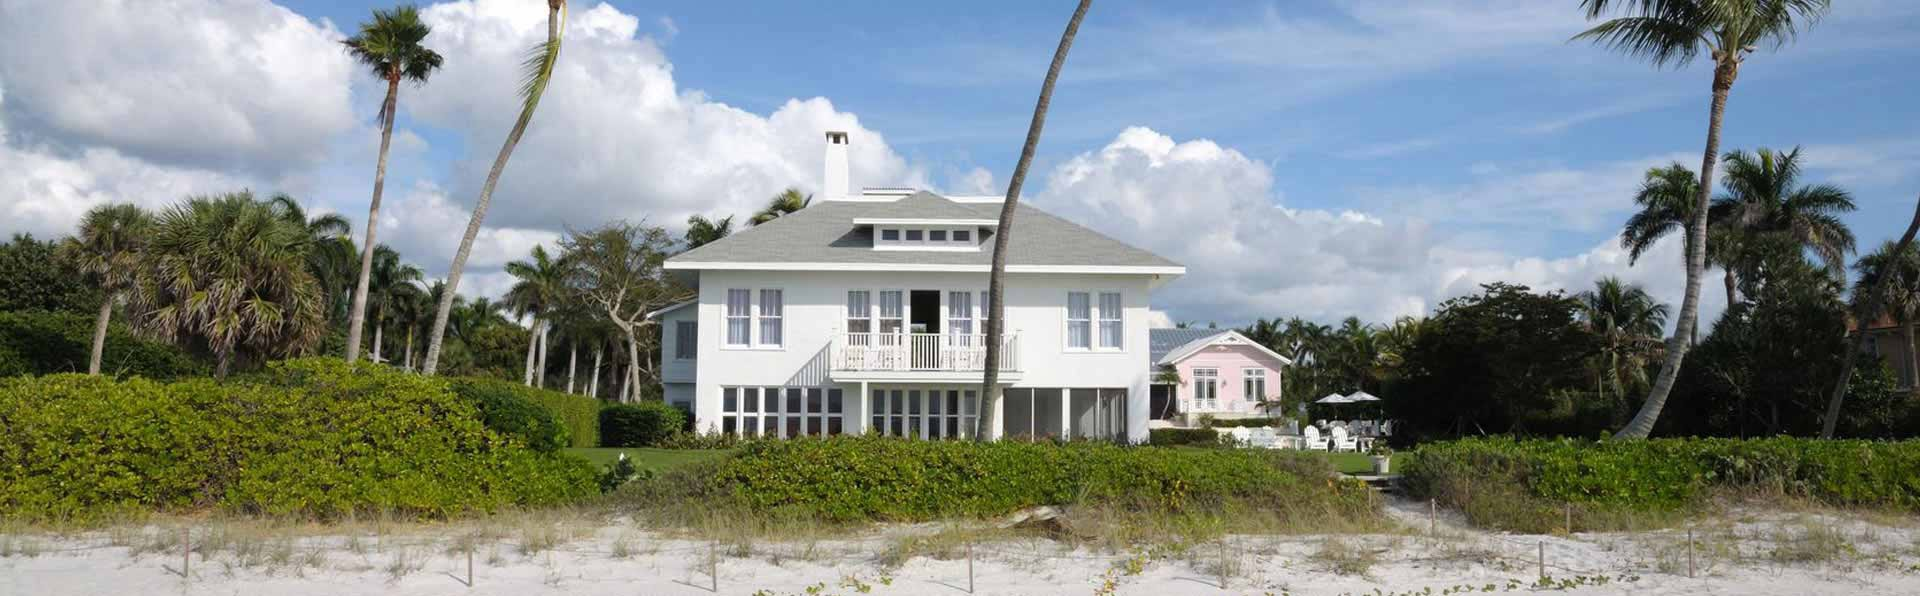 Photo of white 2 story house on beach in Sanibel Island, FL.